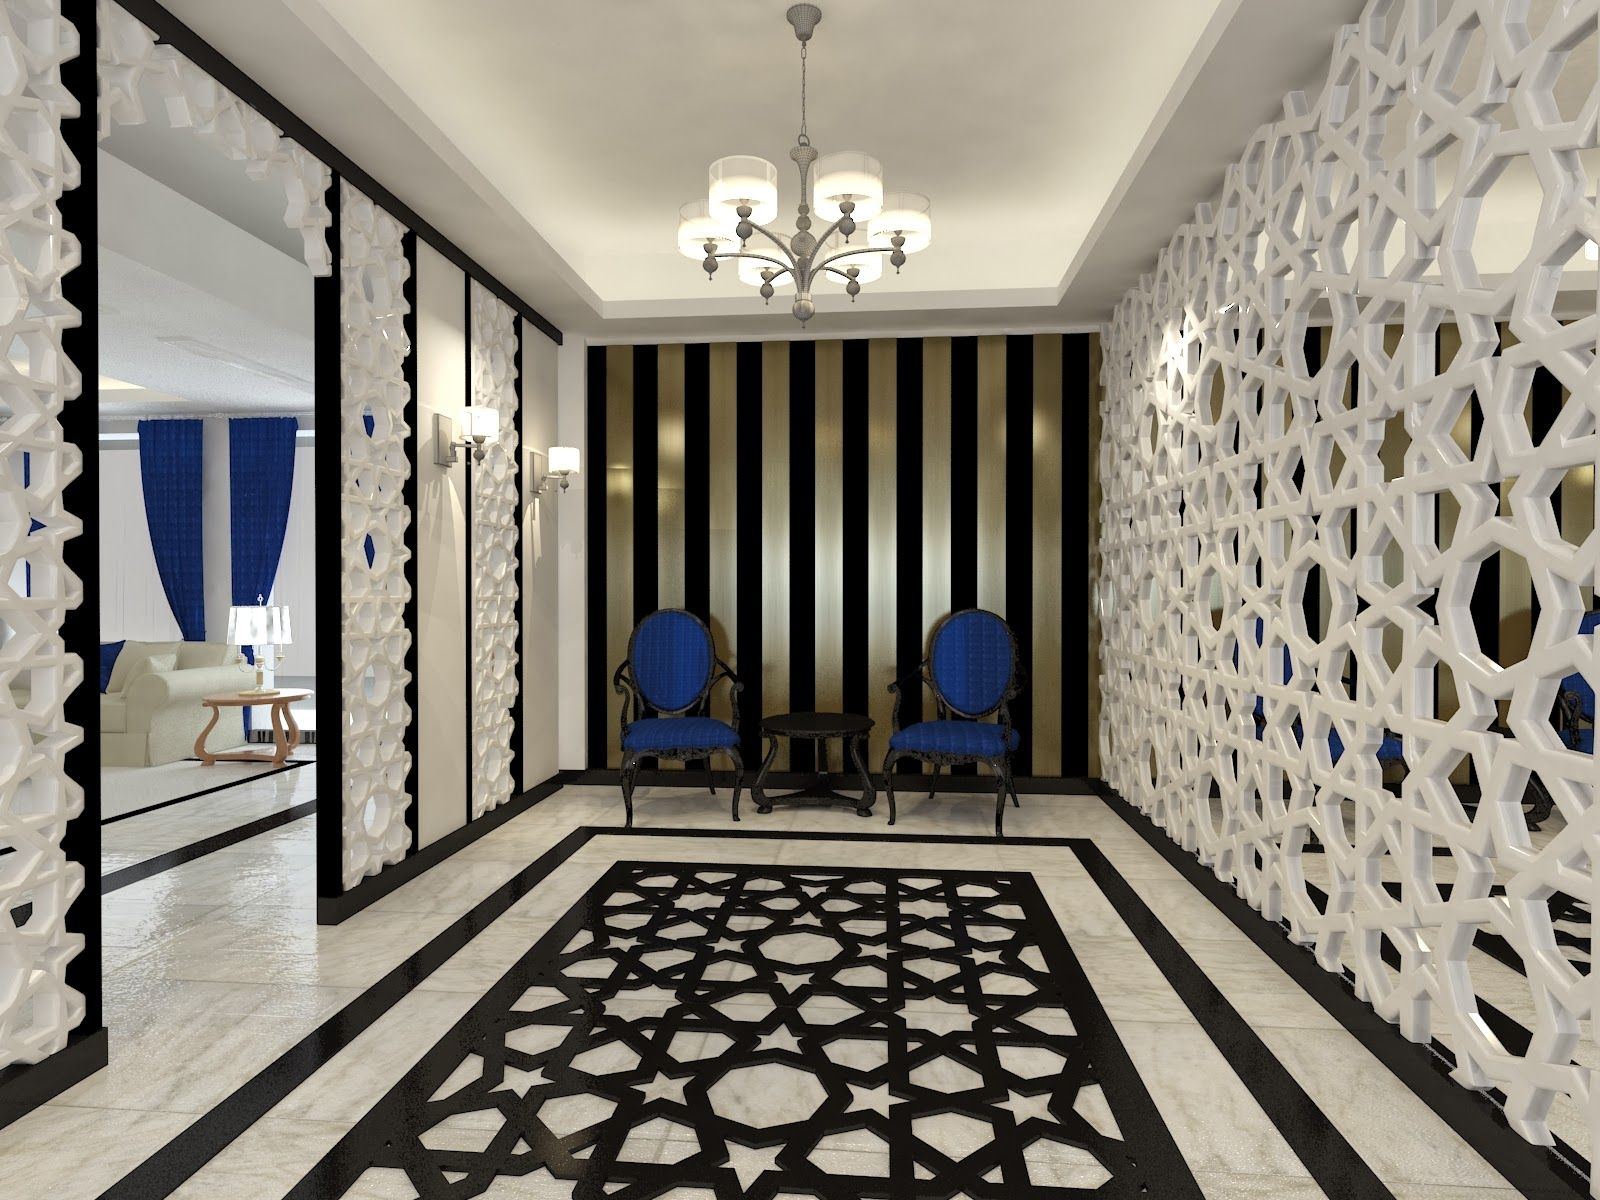 Islamic modern interior design google search banks for Interior decoration pics